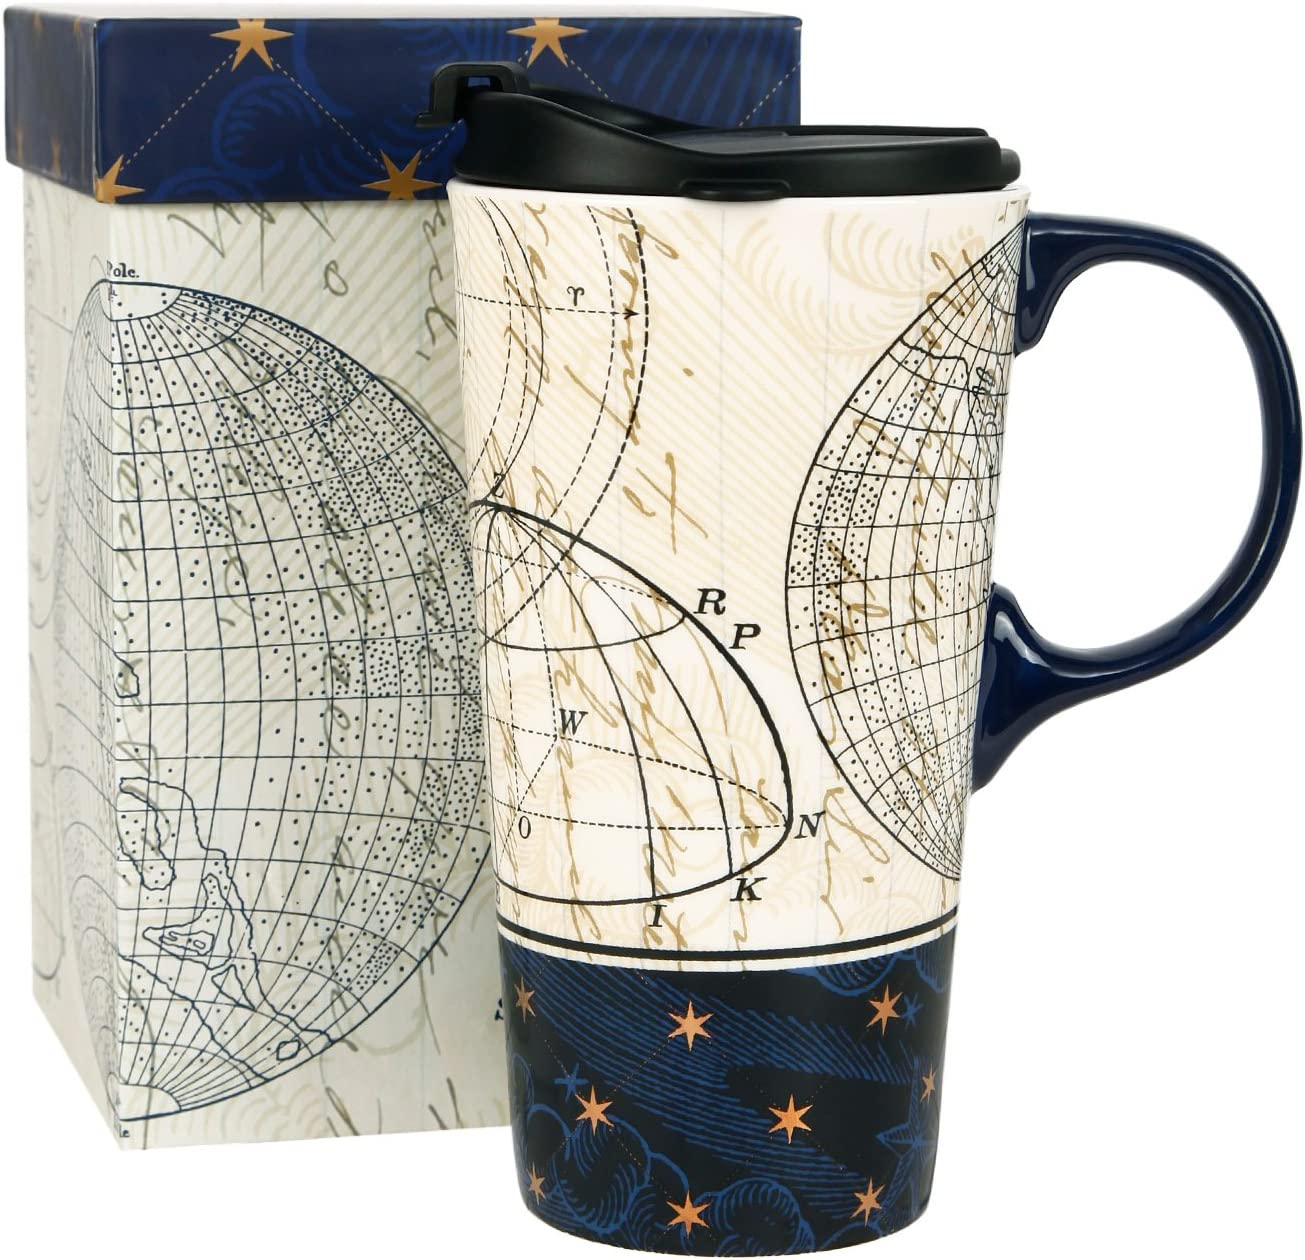 Topadorn Ceramic Travel Mug and Coffee Cup 17 oz. with Handle and Color Box,Starstruck